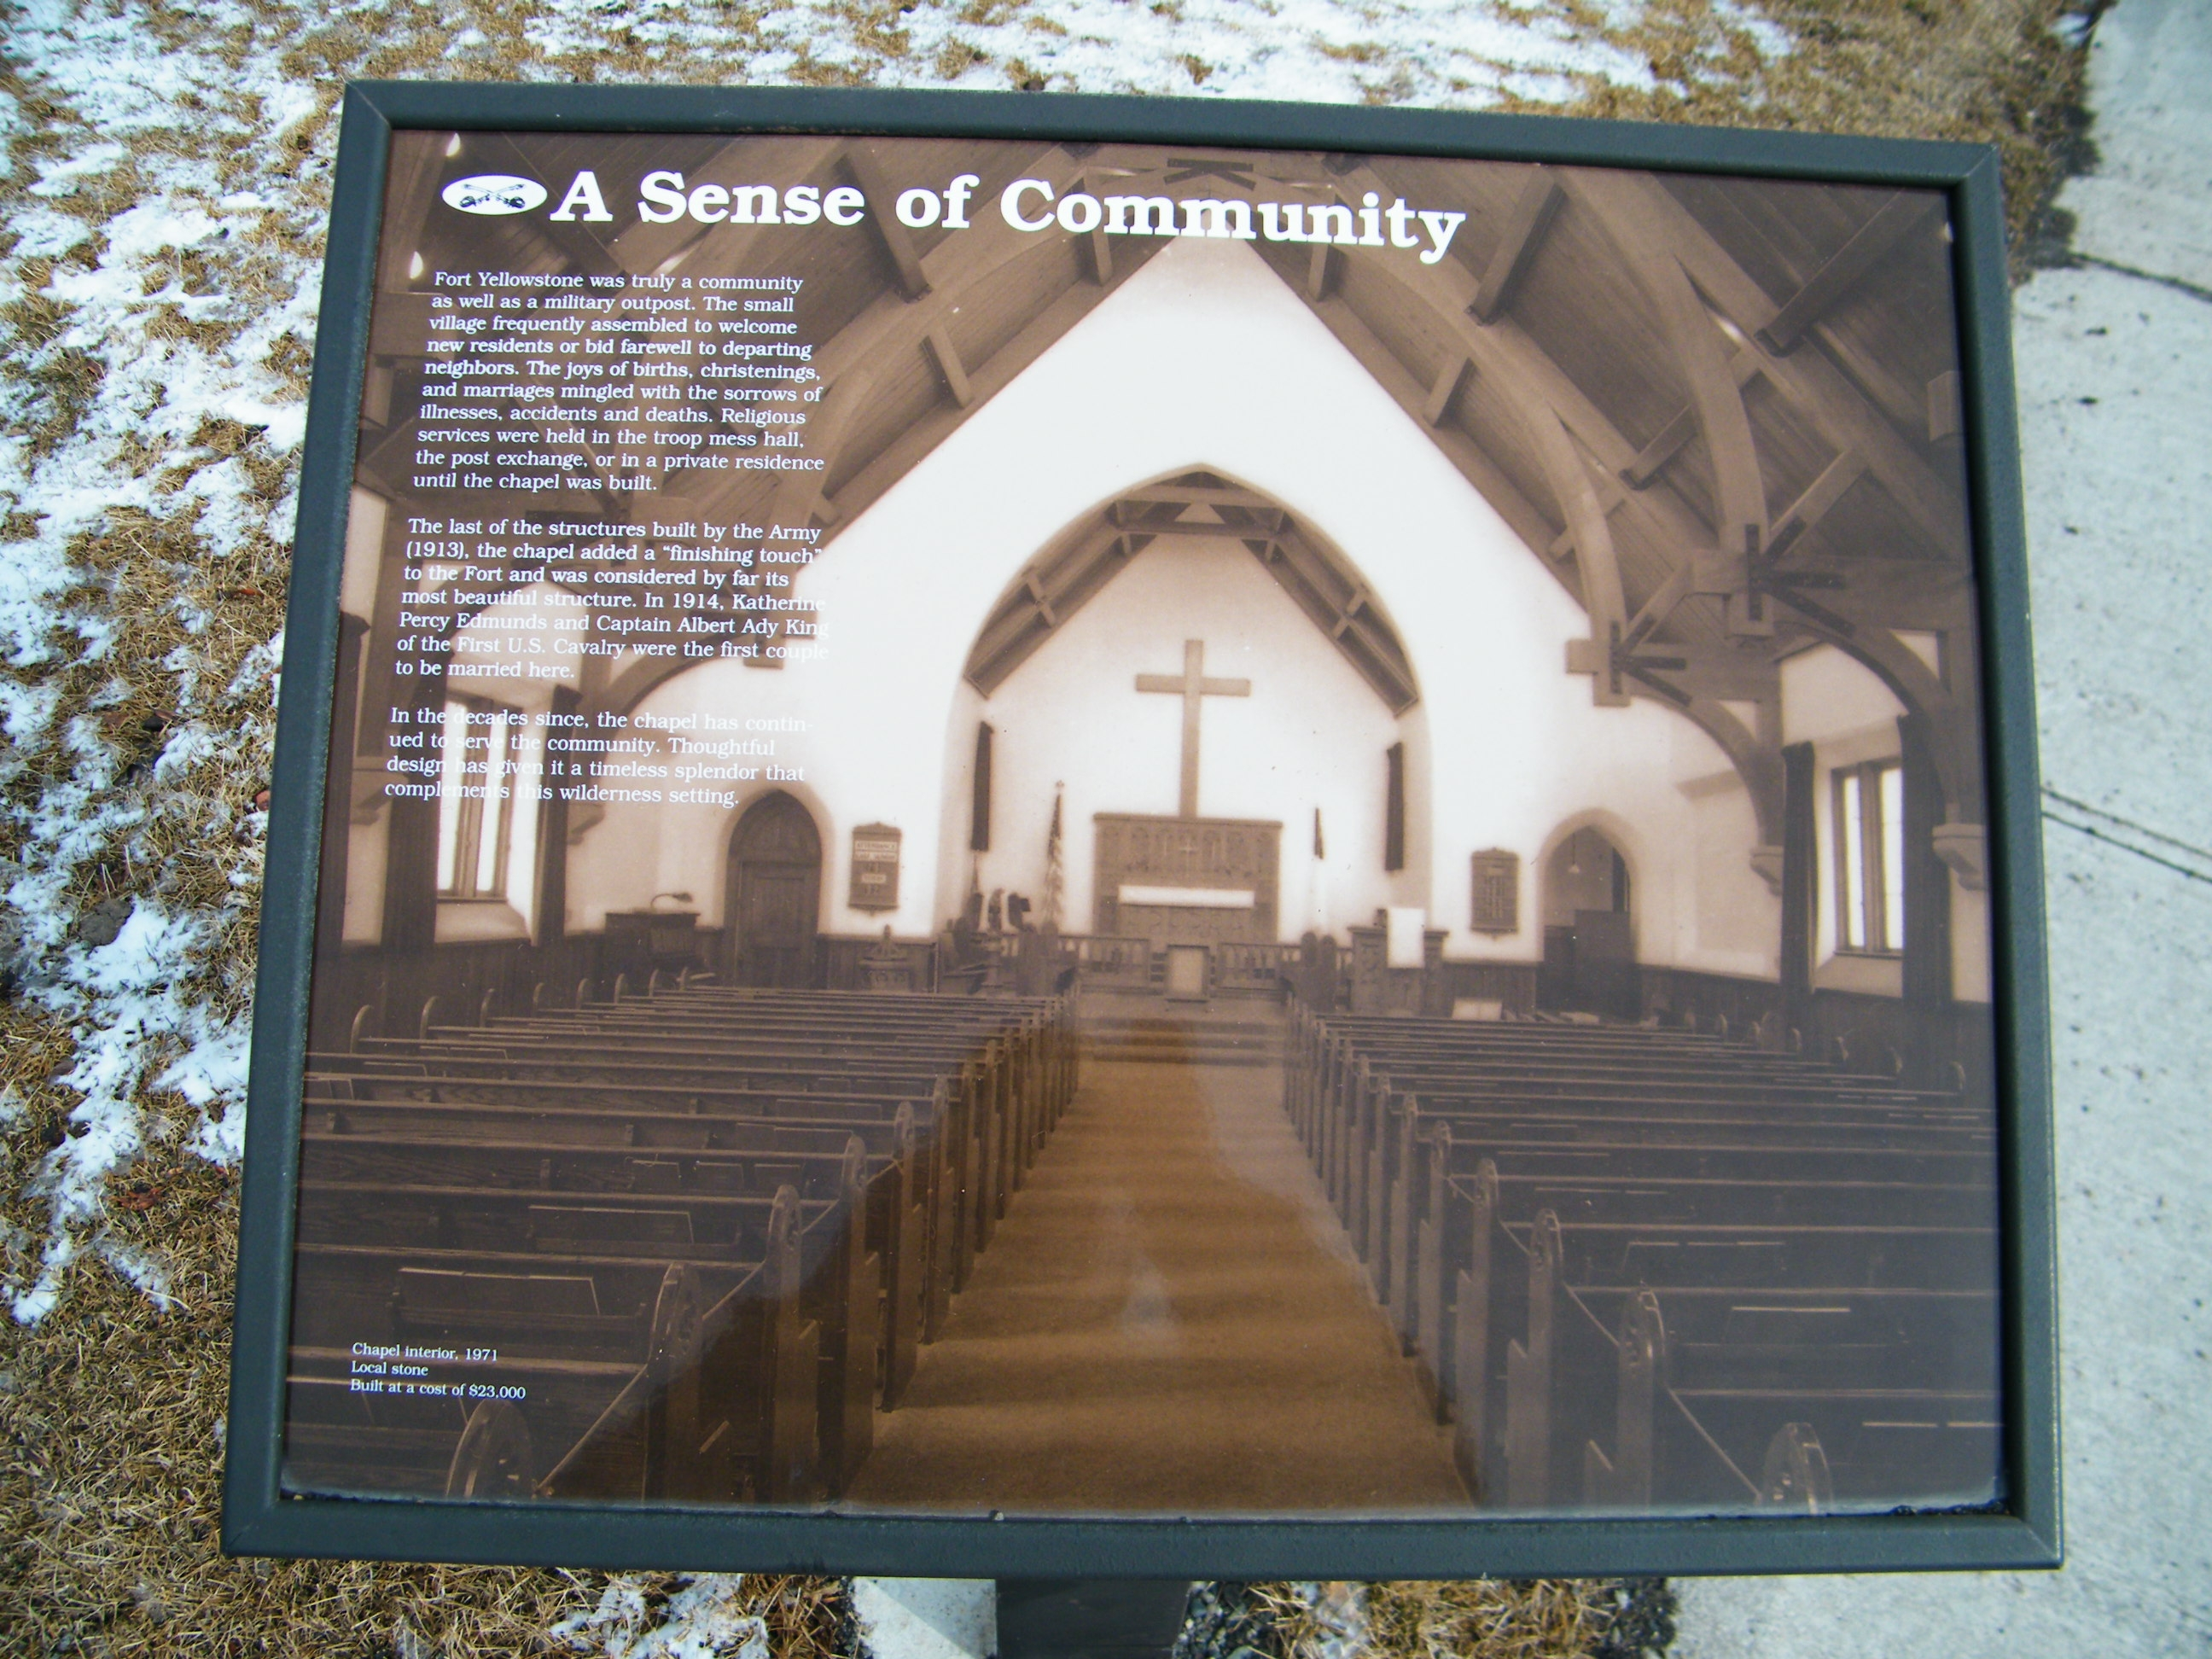 A Sense of Community Marker